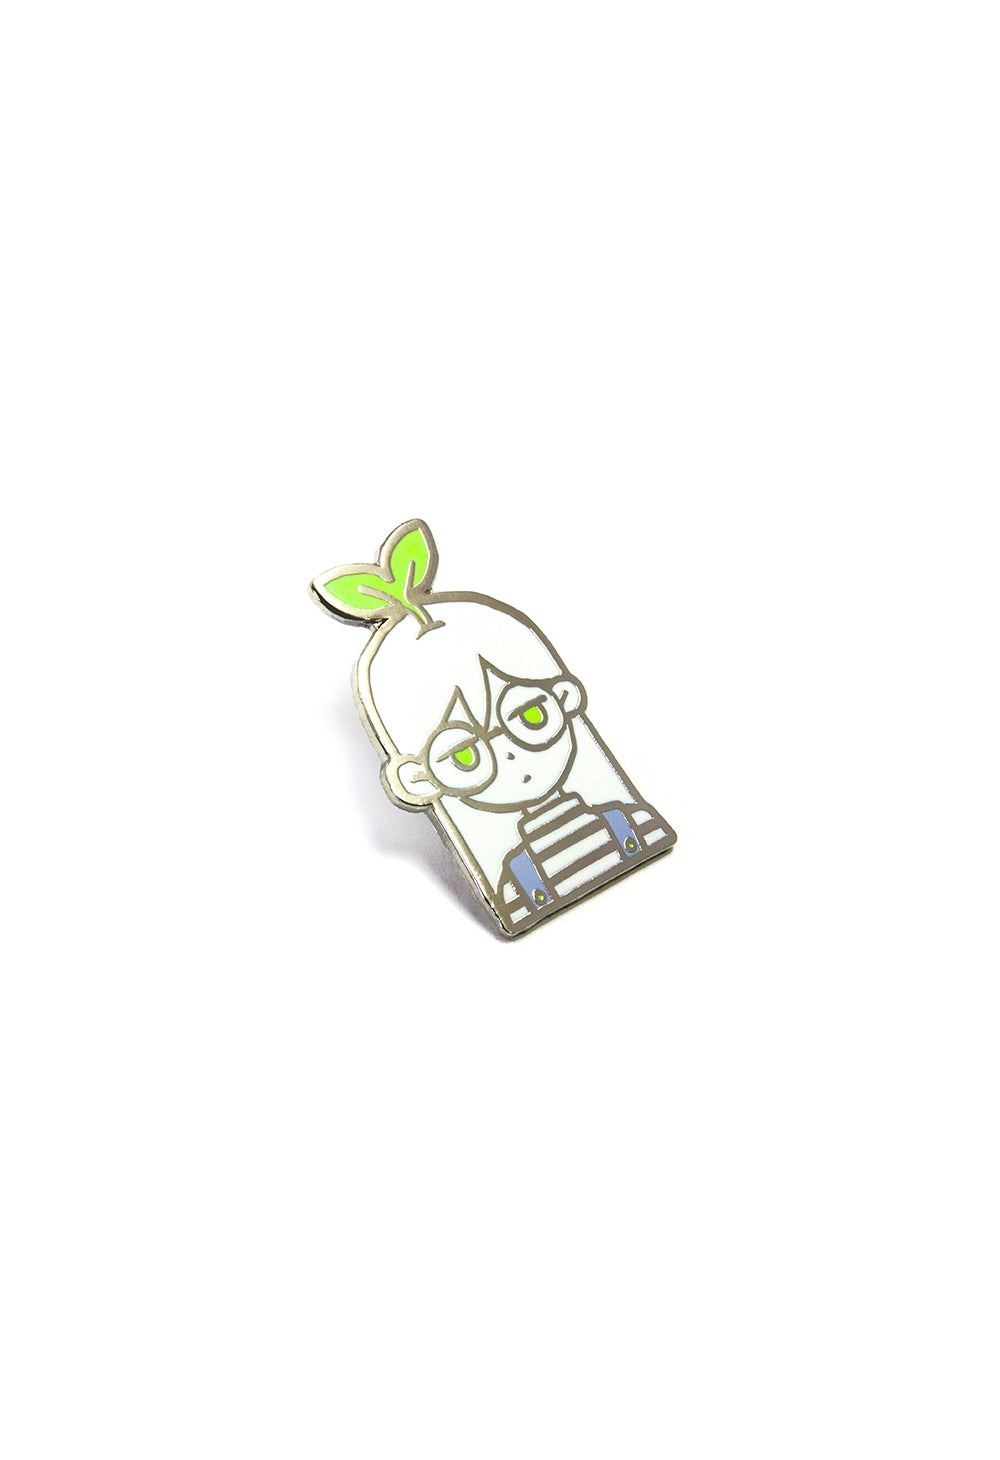 SPROUTGIRL Pin